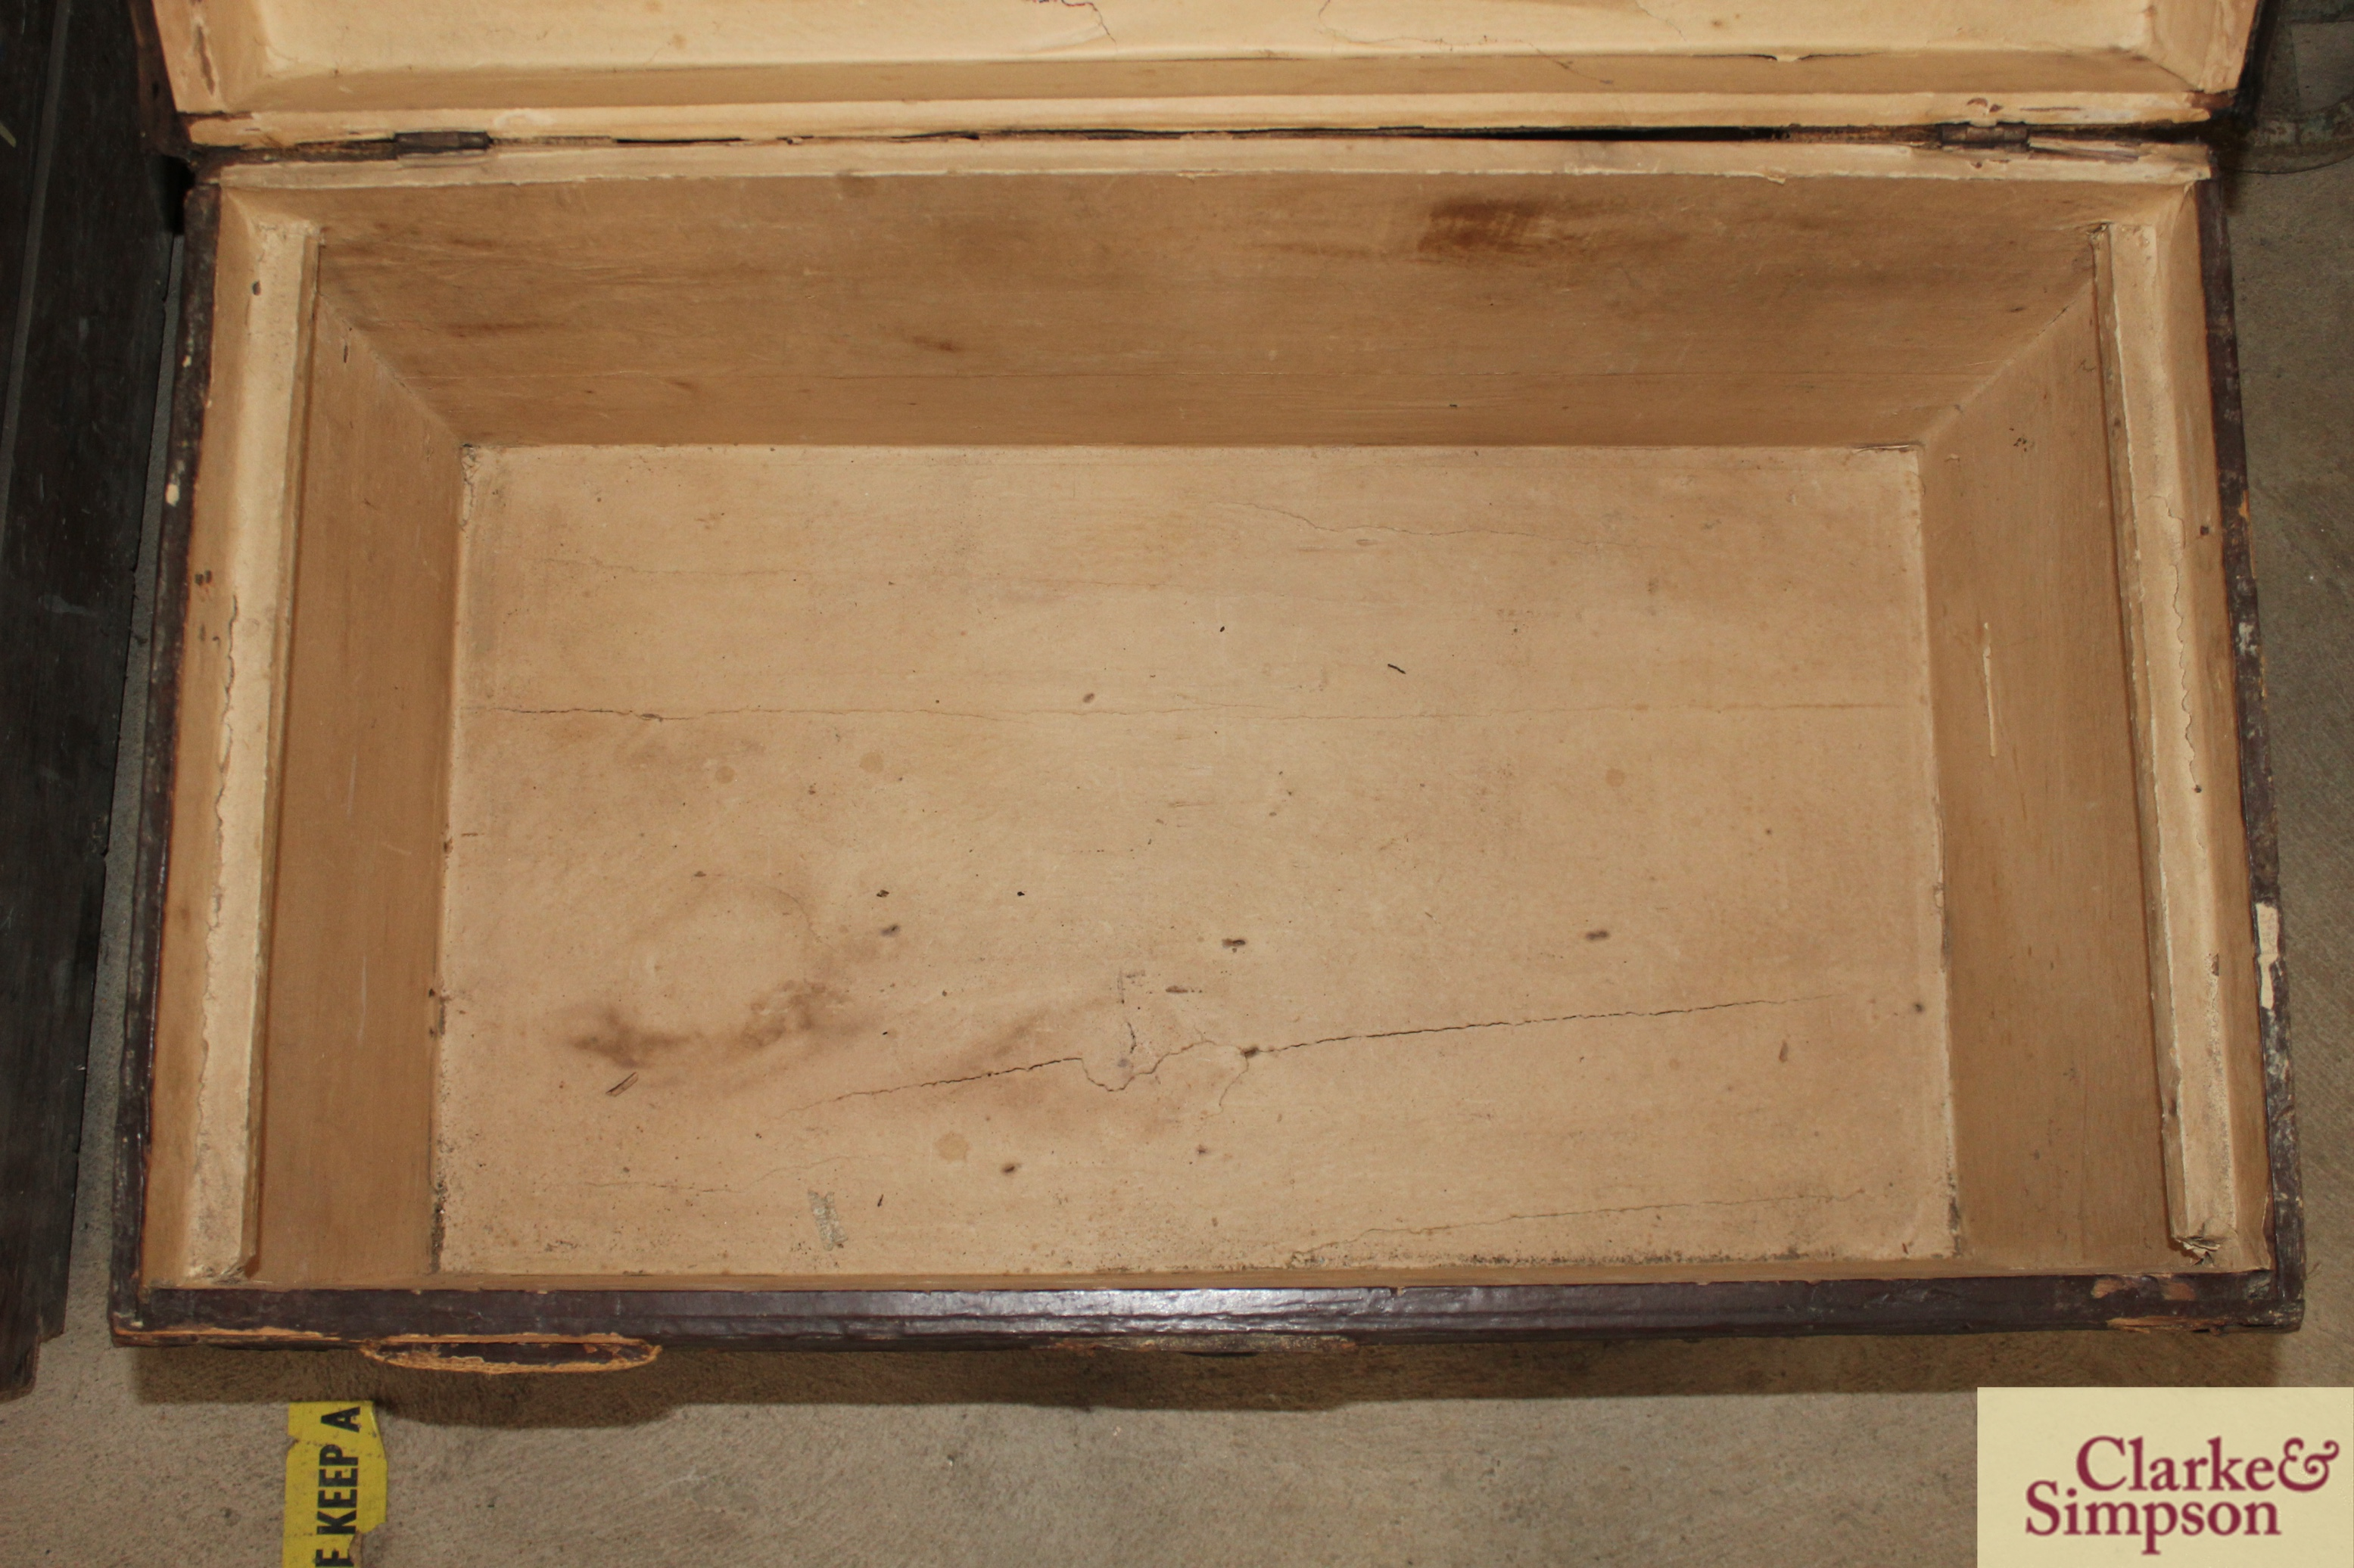 A vintage wooden trunk with metal mounts and carry - Image 4 of 4